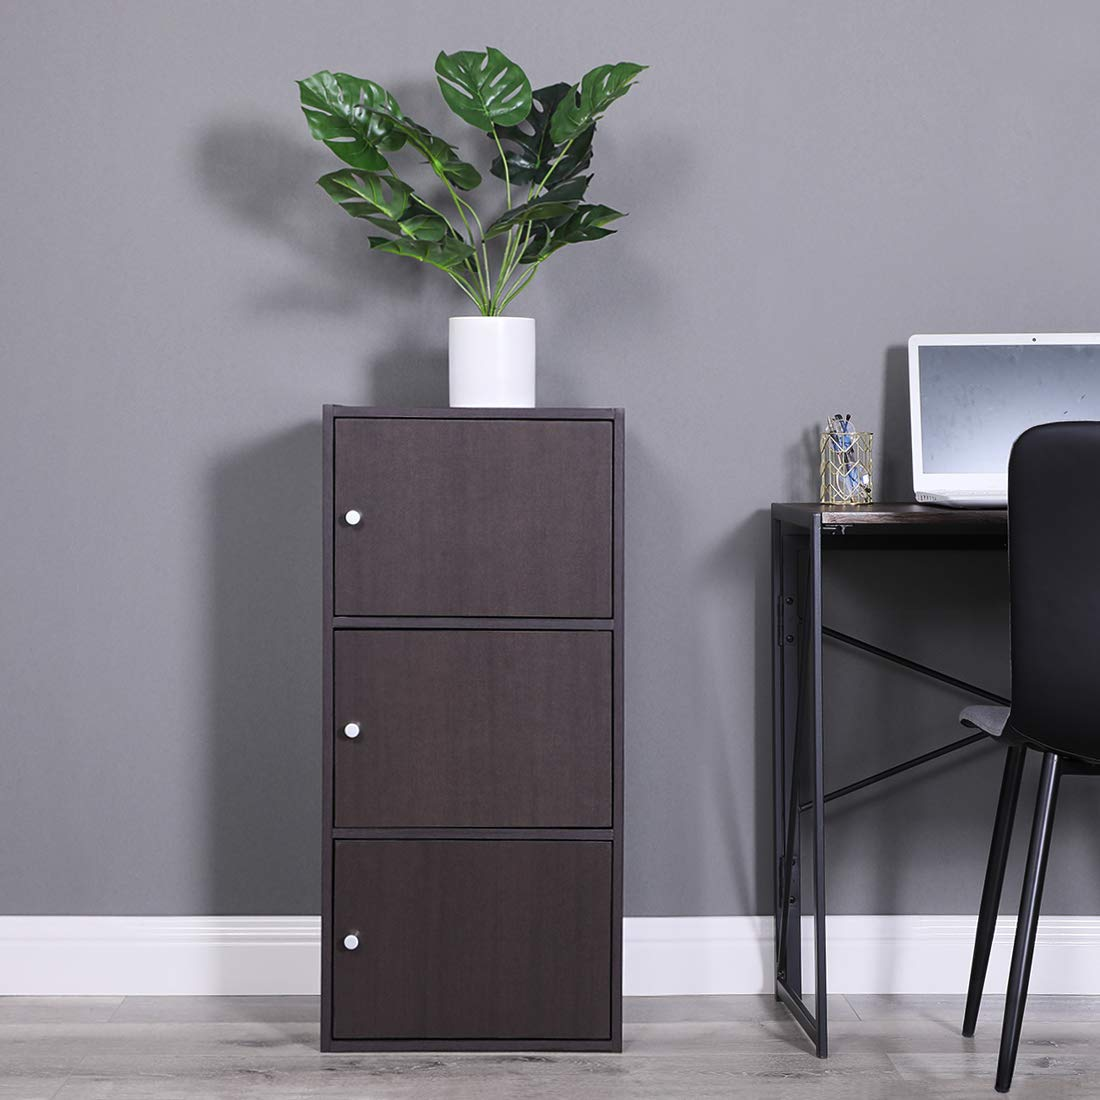 Multifunctional Storage-Cabinet with 3 Magnetic Doors Classic Modern Bookcase Home Office Vertical File Cabinets, Espresso Brown-CAS011 by Coavas (Image #6)